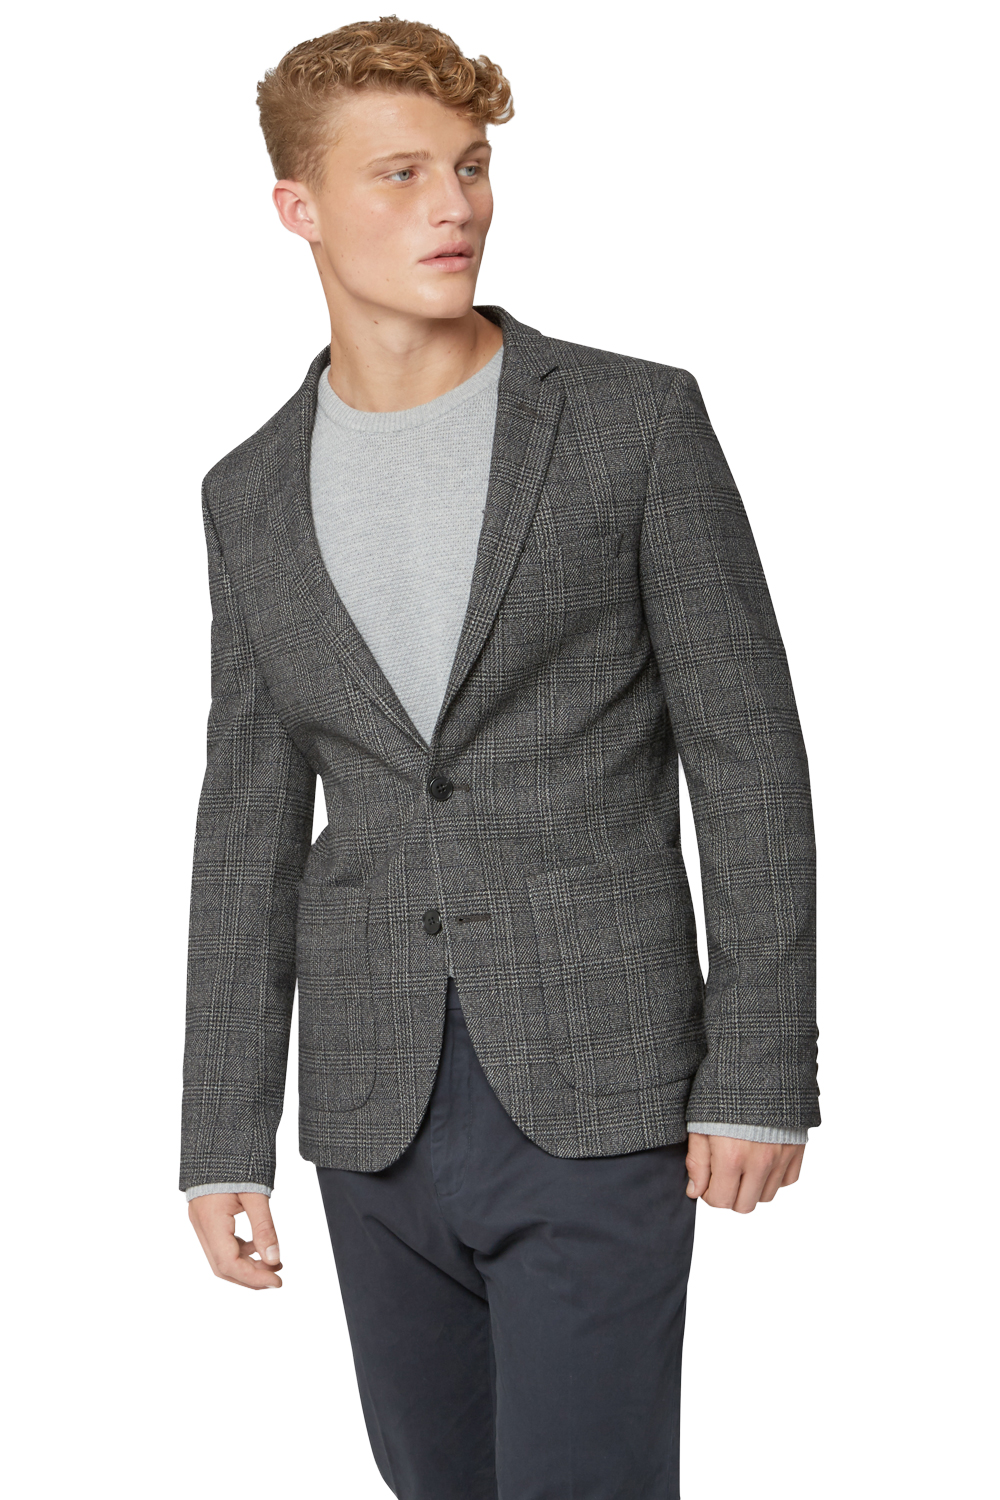 Men's Grey Blazer. For most men, their first instinct would be to grab a black blazer. With black having such formal overtones it can be harder to pair it with lighter pieces like a blue shirt.A grey blazer is, therefore, a perfect alternative.